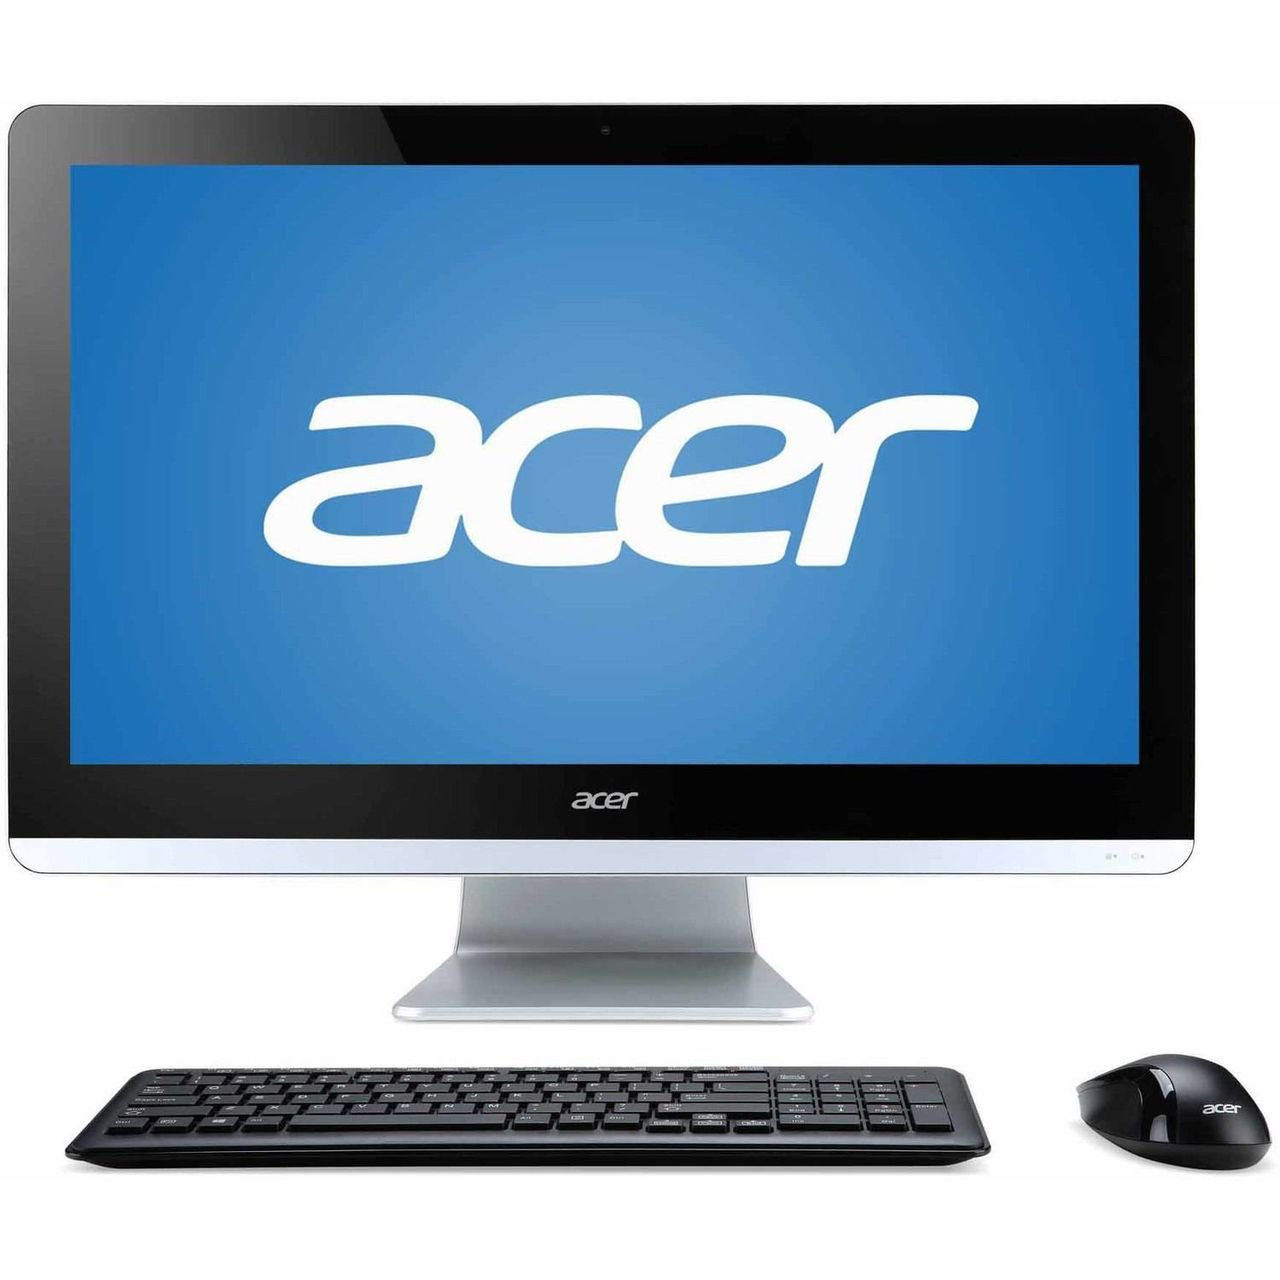 Acer Aspire - AZC-700G-UW61 19.5 inch All-in-One Desktop